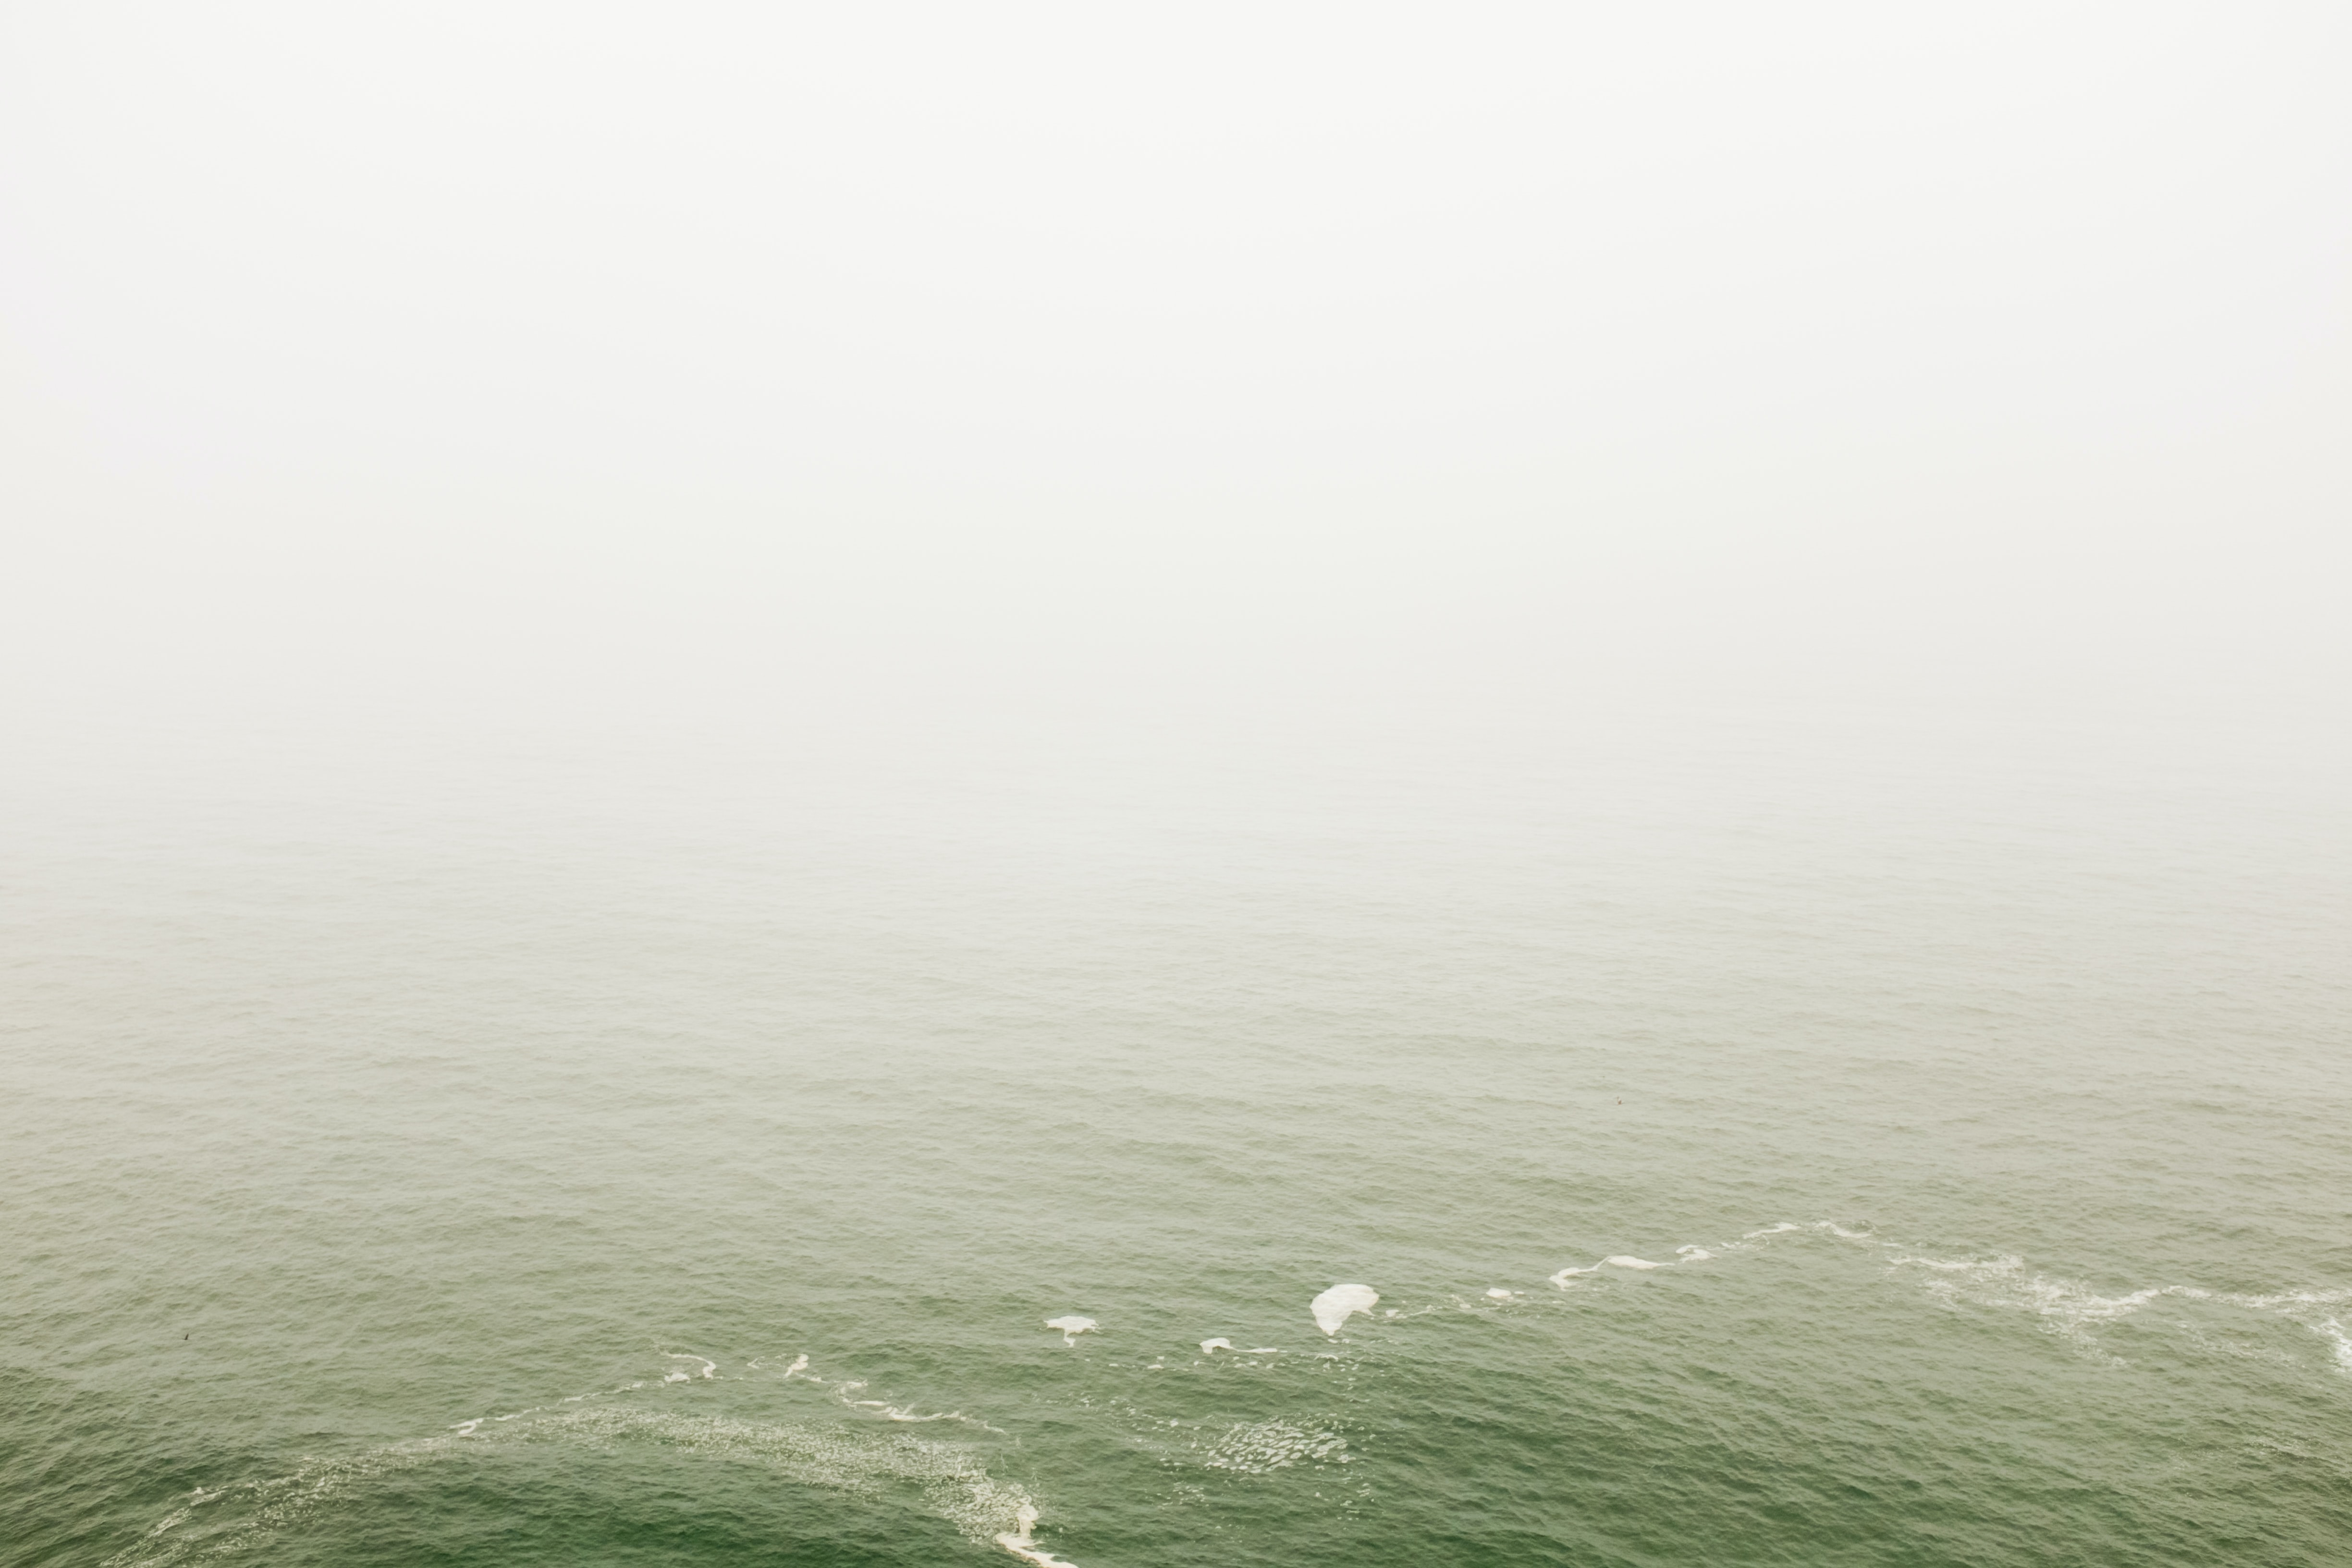 Hazy fog over green sea waters